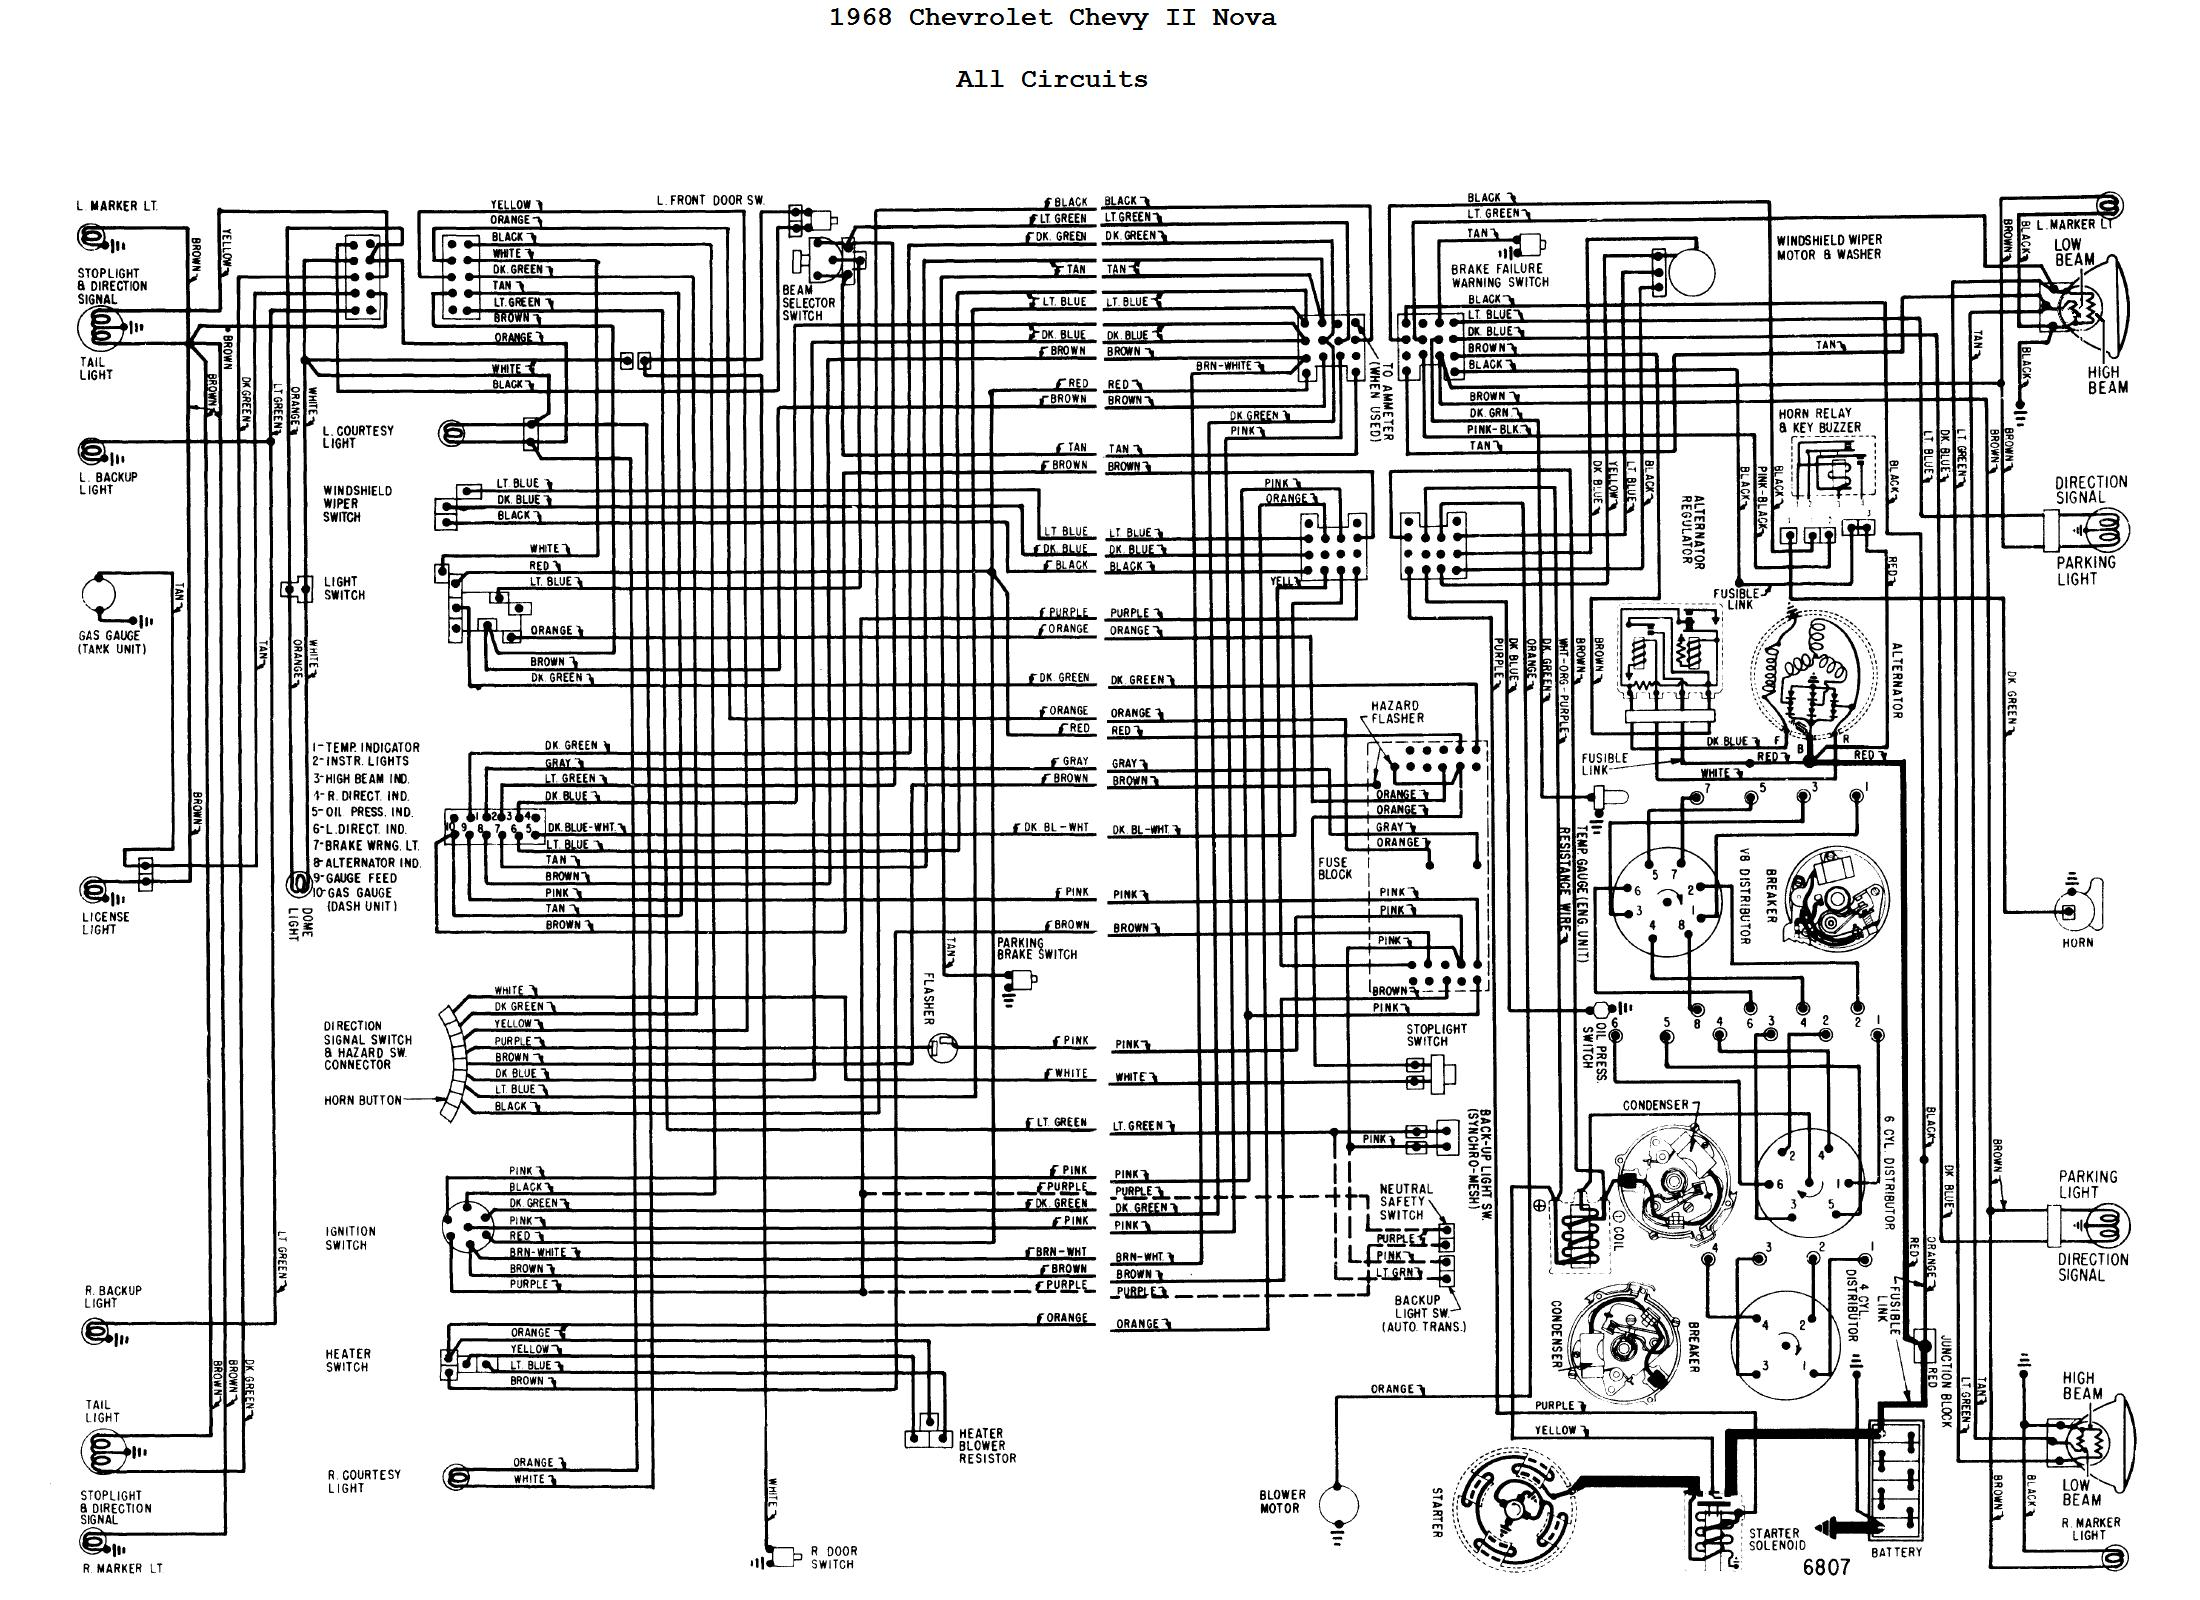 1971 Chevy Nova Wiring Diagram Wiring Diagrams Connection Connection Miglioribanche It